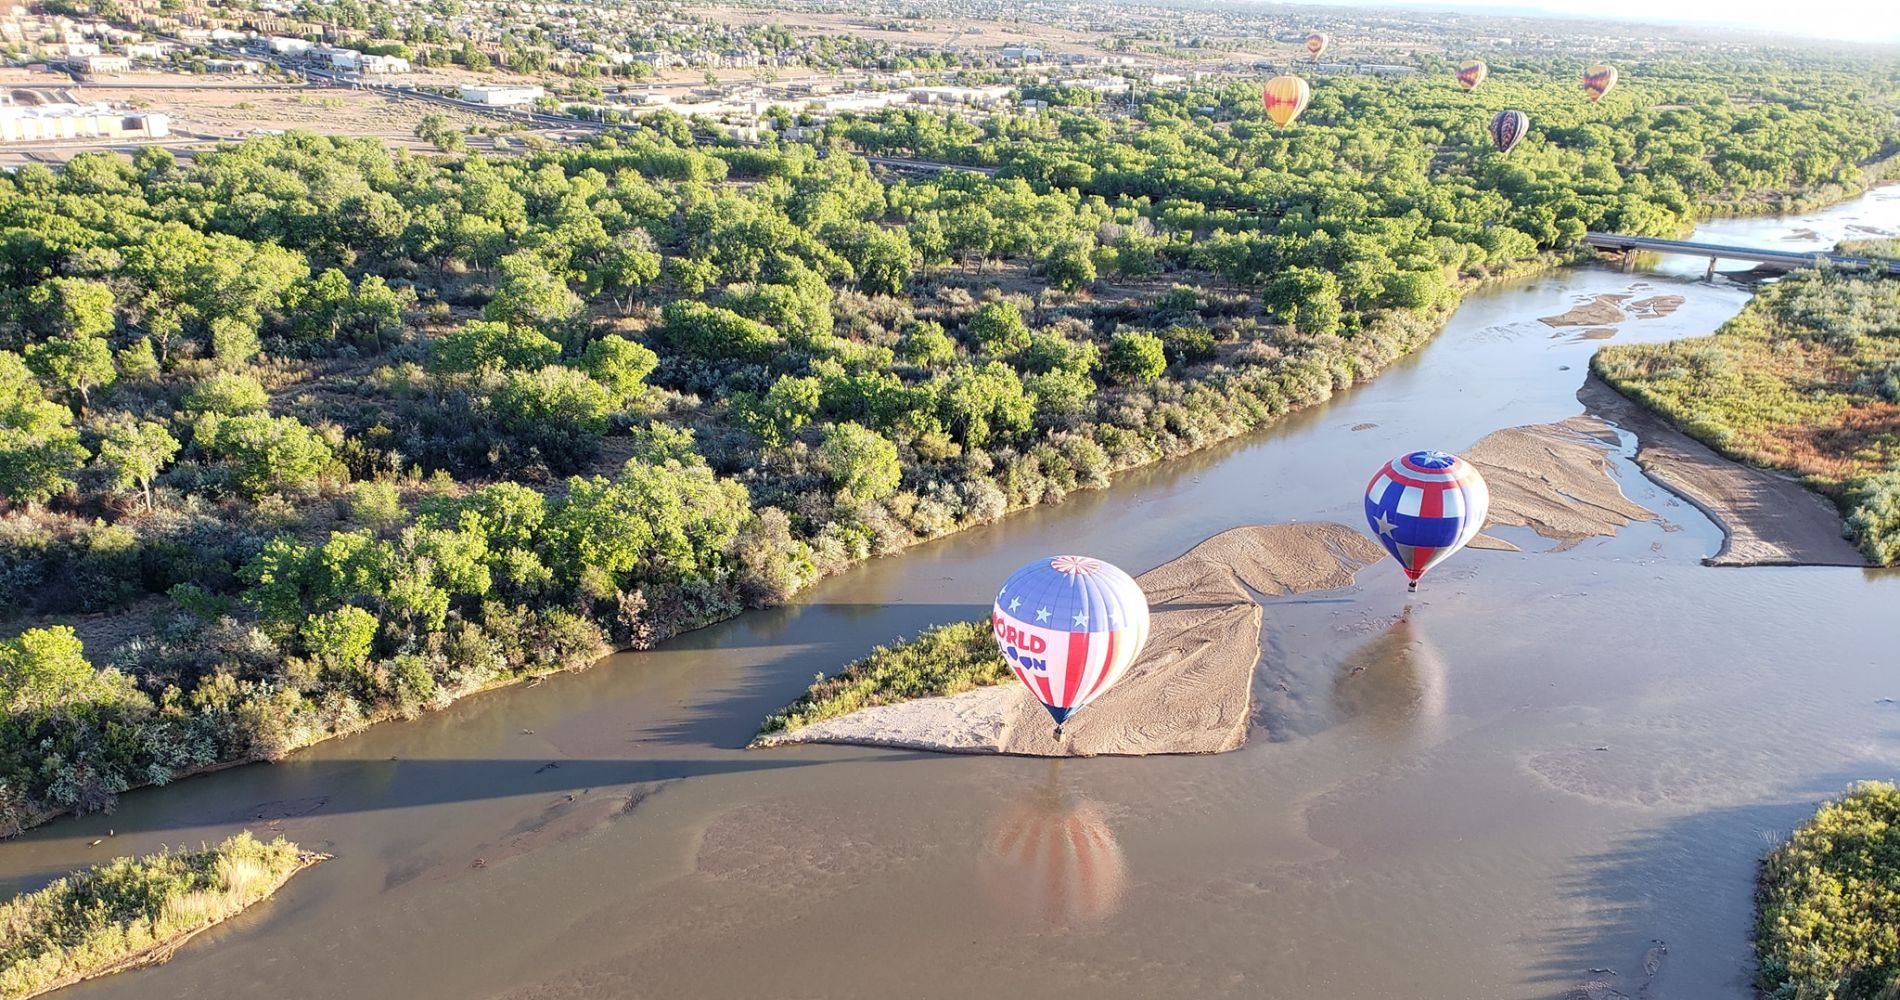 Hot air balloon flight over Rio Grande Valley in New Mexico